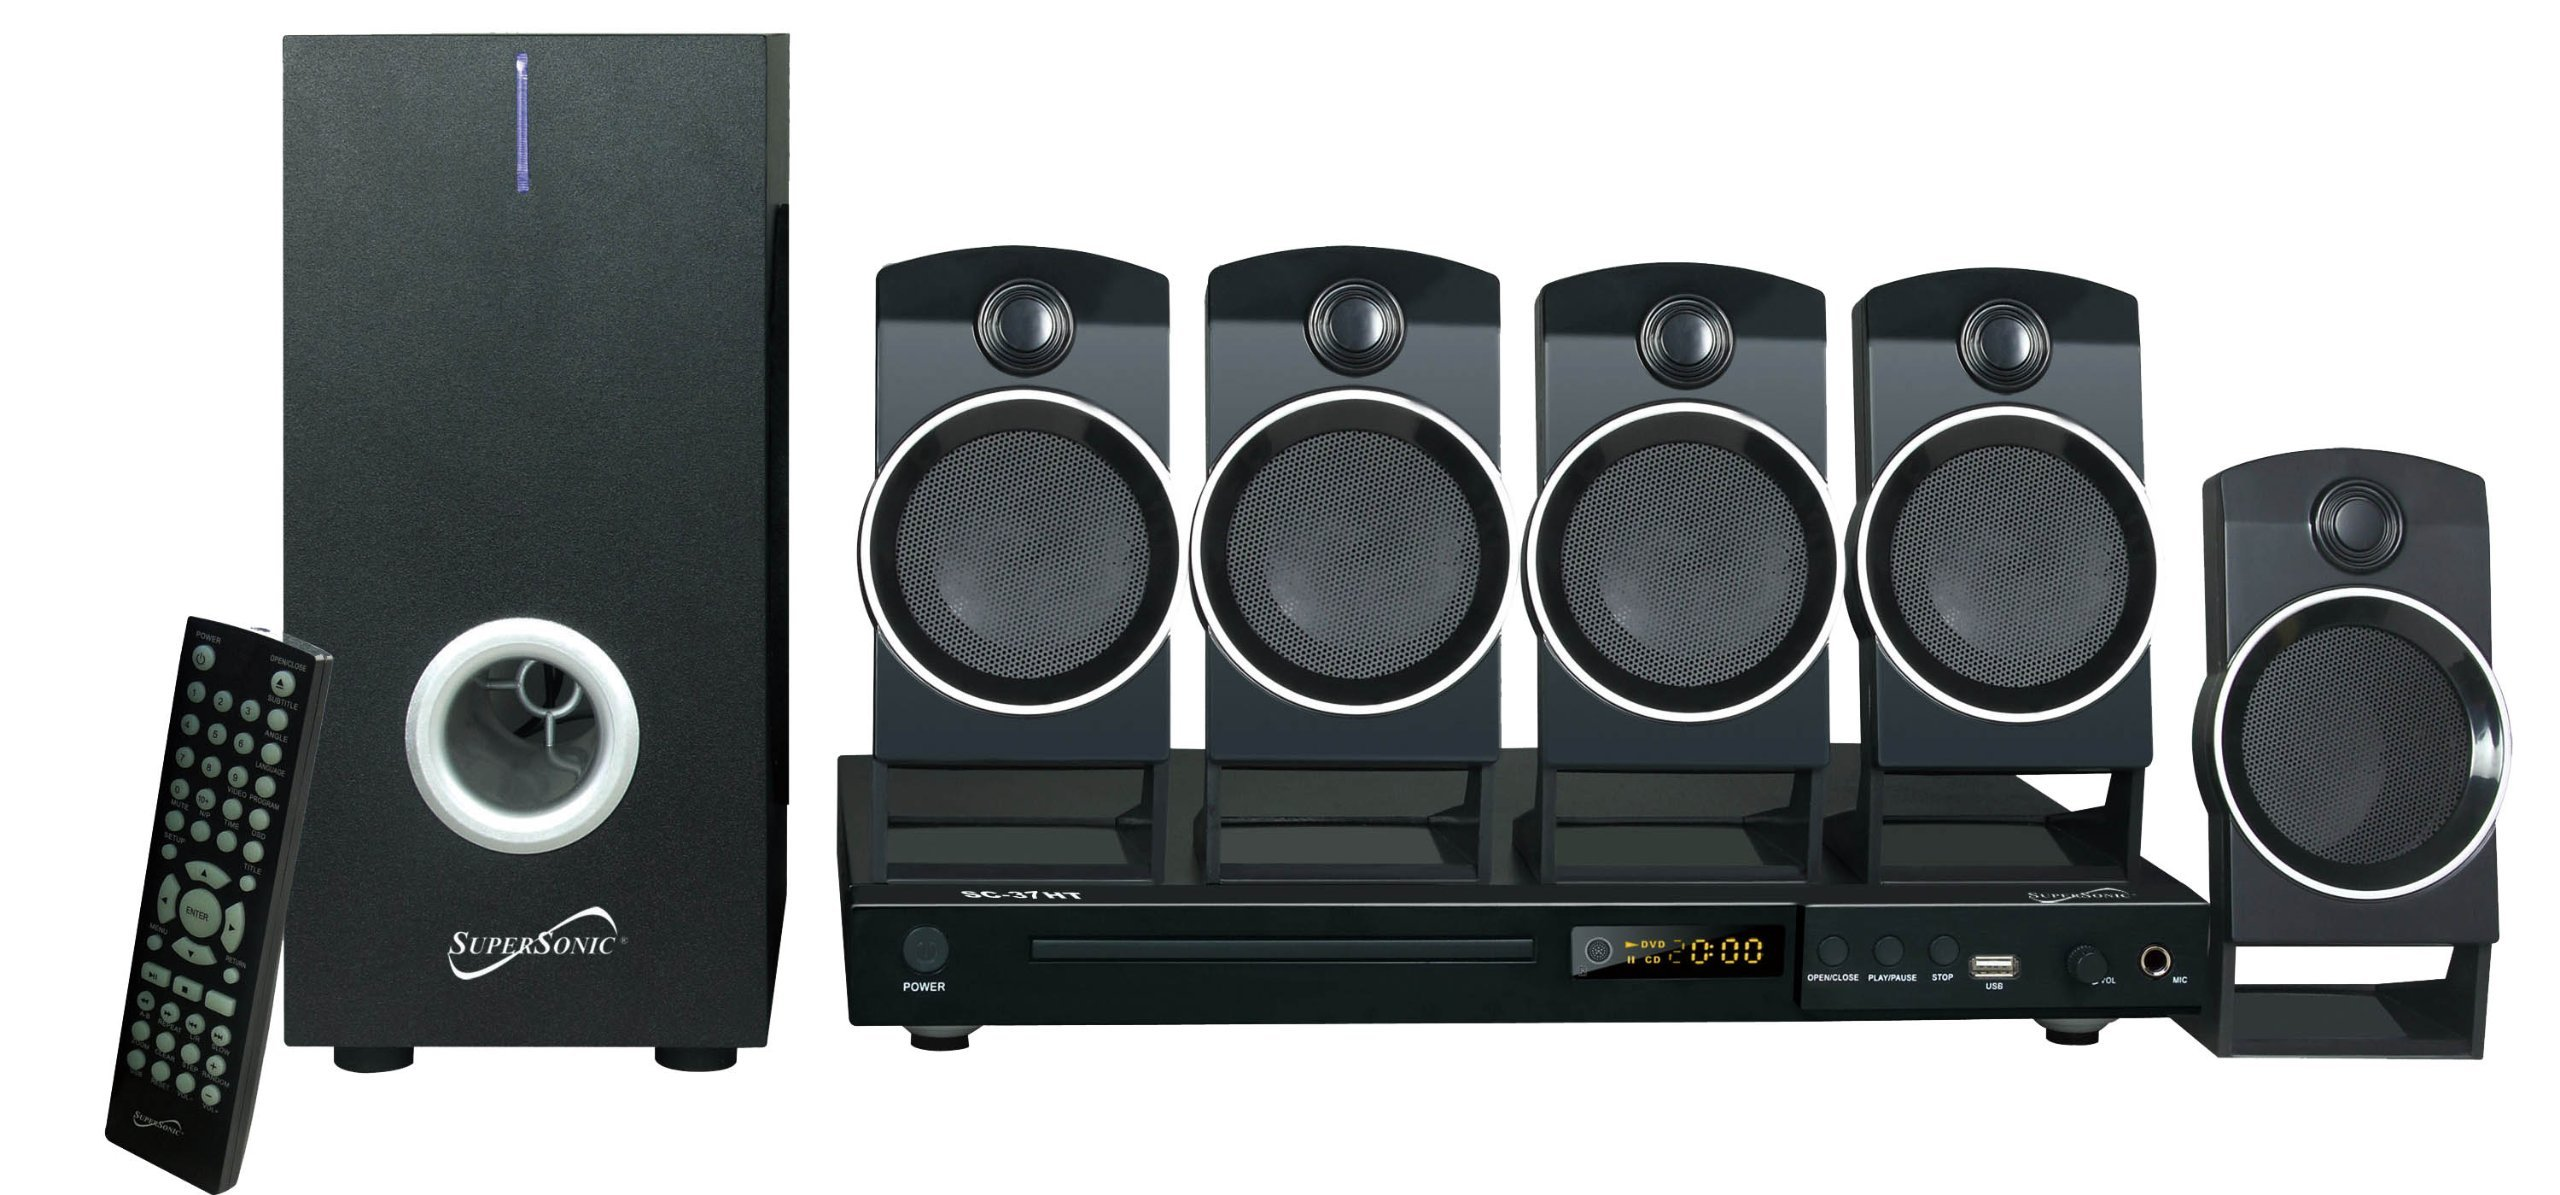 Supersonic SC37HT 5.1 Channel DVD Home Theater System by Supersonic